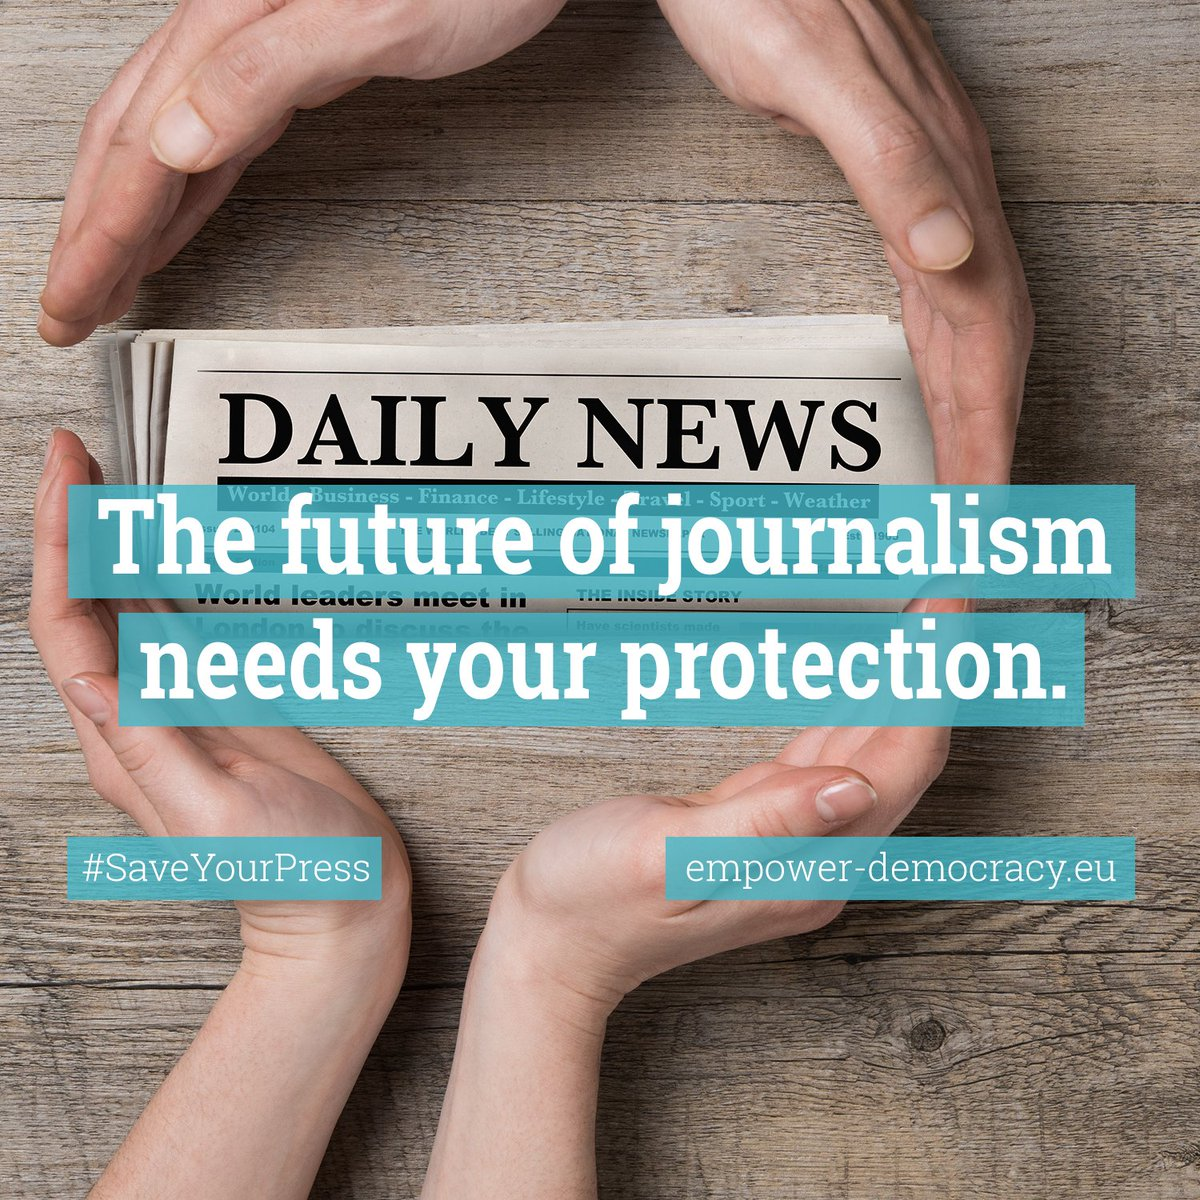 Protect your journalists and #SaveYourPress #copyright  http://www. empower-democracy.eu  &nbsp;   @curziomaltesetw @PervencheBeres<br>http://pic.twitter.com/YQQwzvFGLH